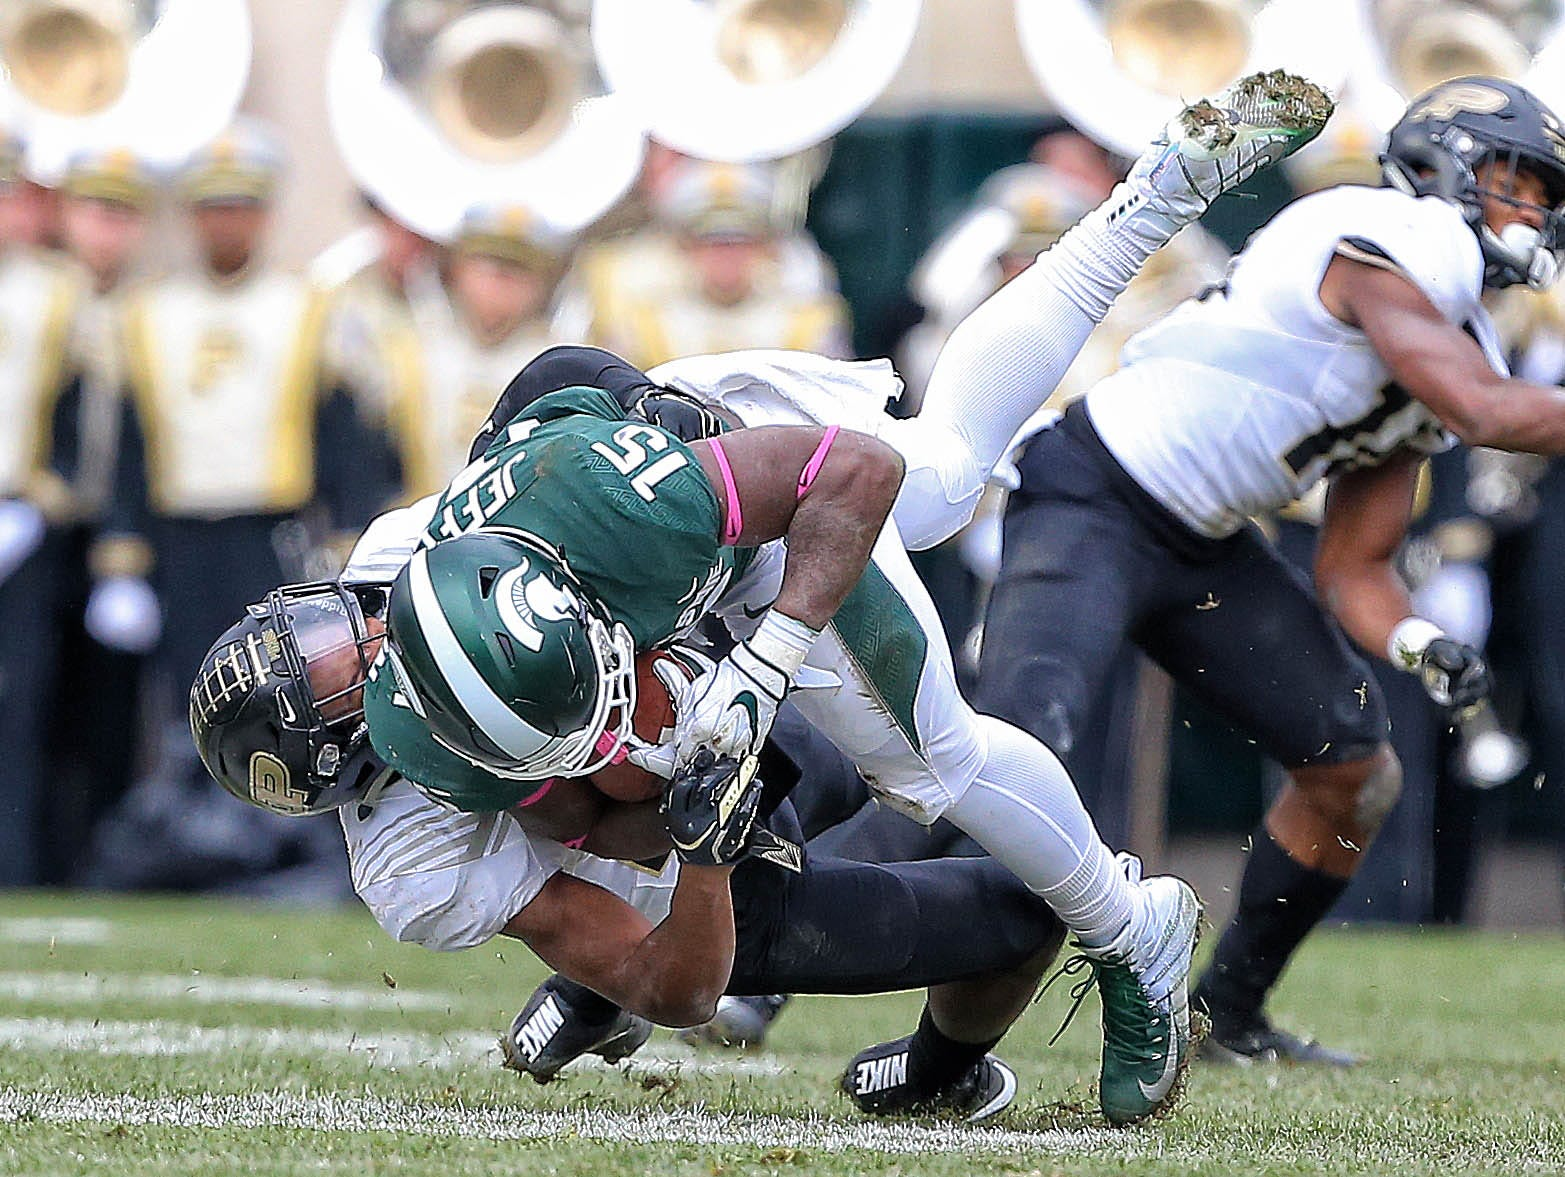 Oct 27, 2018; East Lansing, MI, USA; Michigan State Spartans running back La'Darius Jefferson (15) is tackled by Purdue Boilermakers safety Navon Mosley (27) during the second half of a game at Spartan Stadium. Mandatory Credit: Mike Carter-USA TODAY Sports